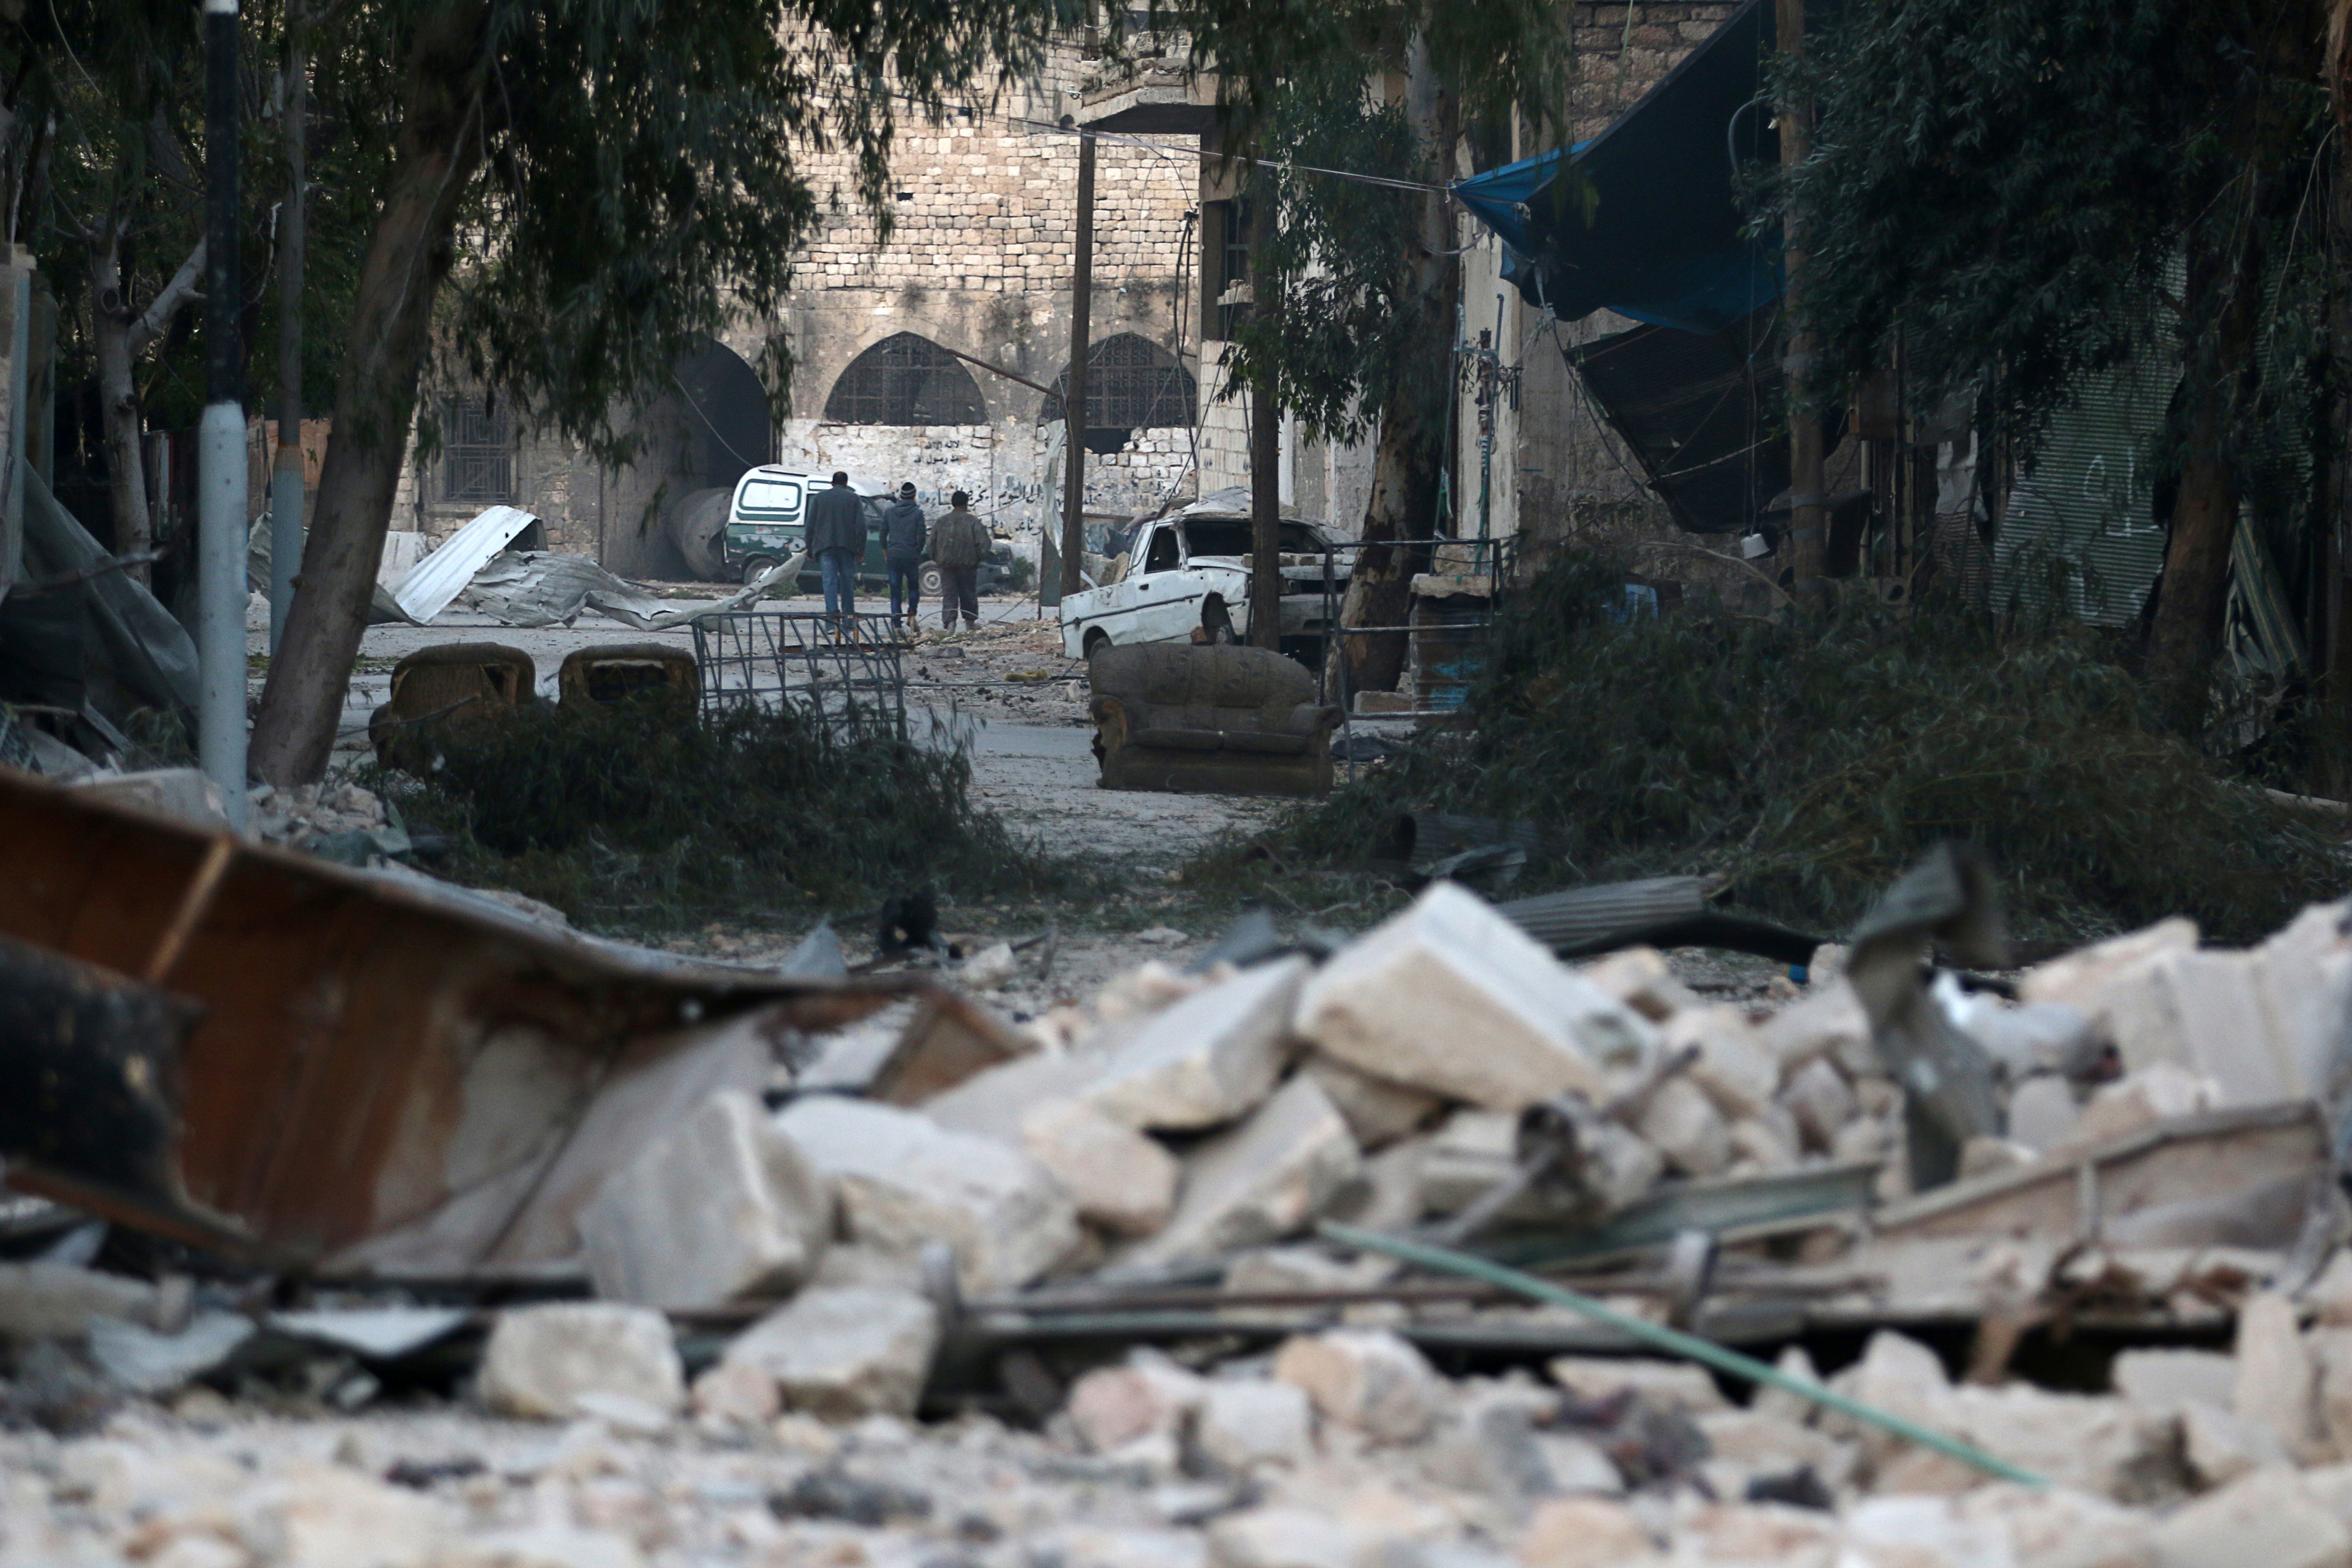 Photo of damaged site in Aleppo taken on Nov. 19. Photo by Abdalrhman Ismail/Reuters